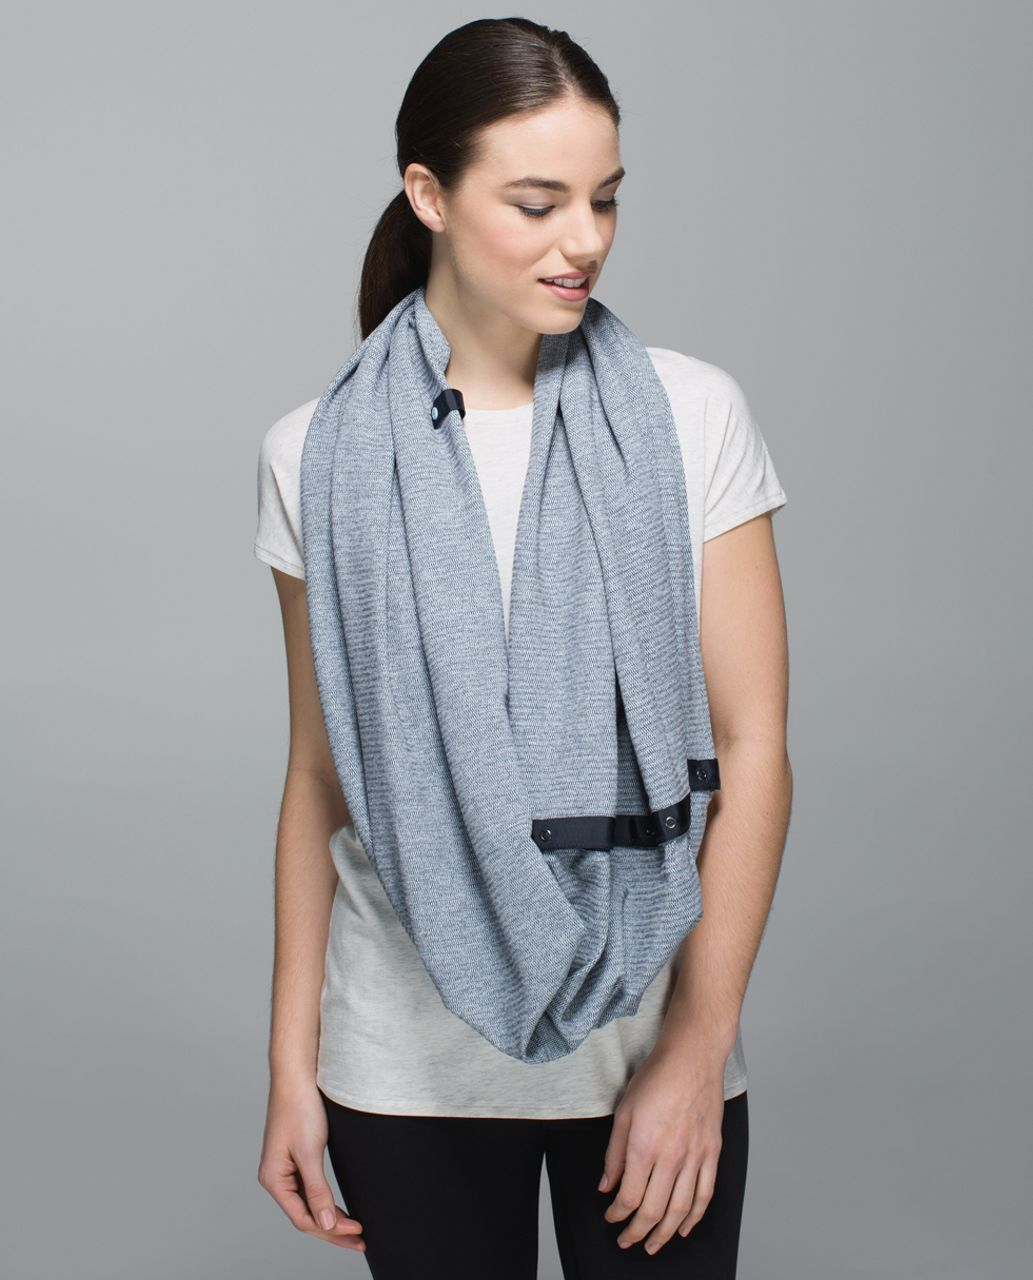 Lululemon Vinyasa Scarf *Rulu - Mini Check Pique Caspian Blue Heathered Inkwell